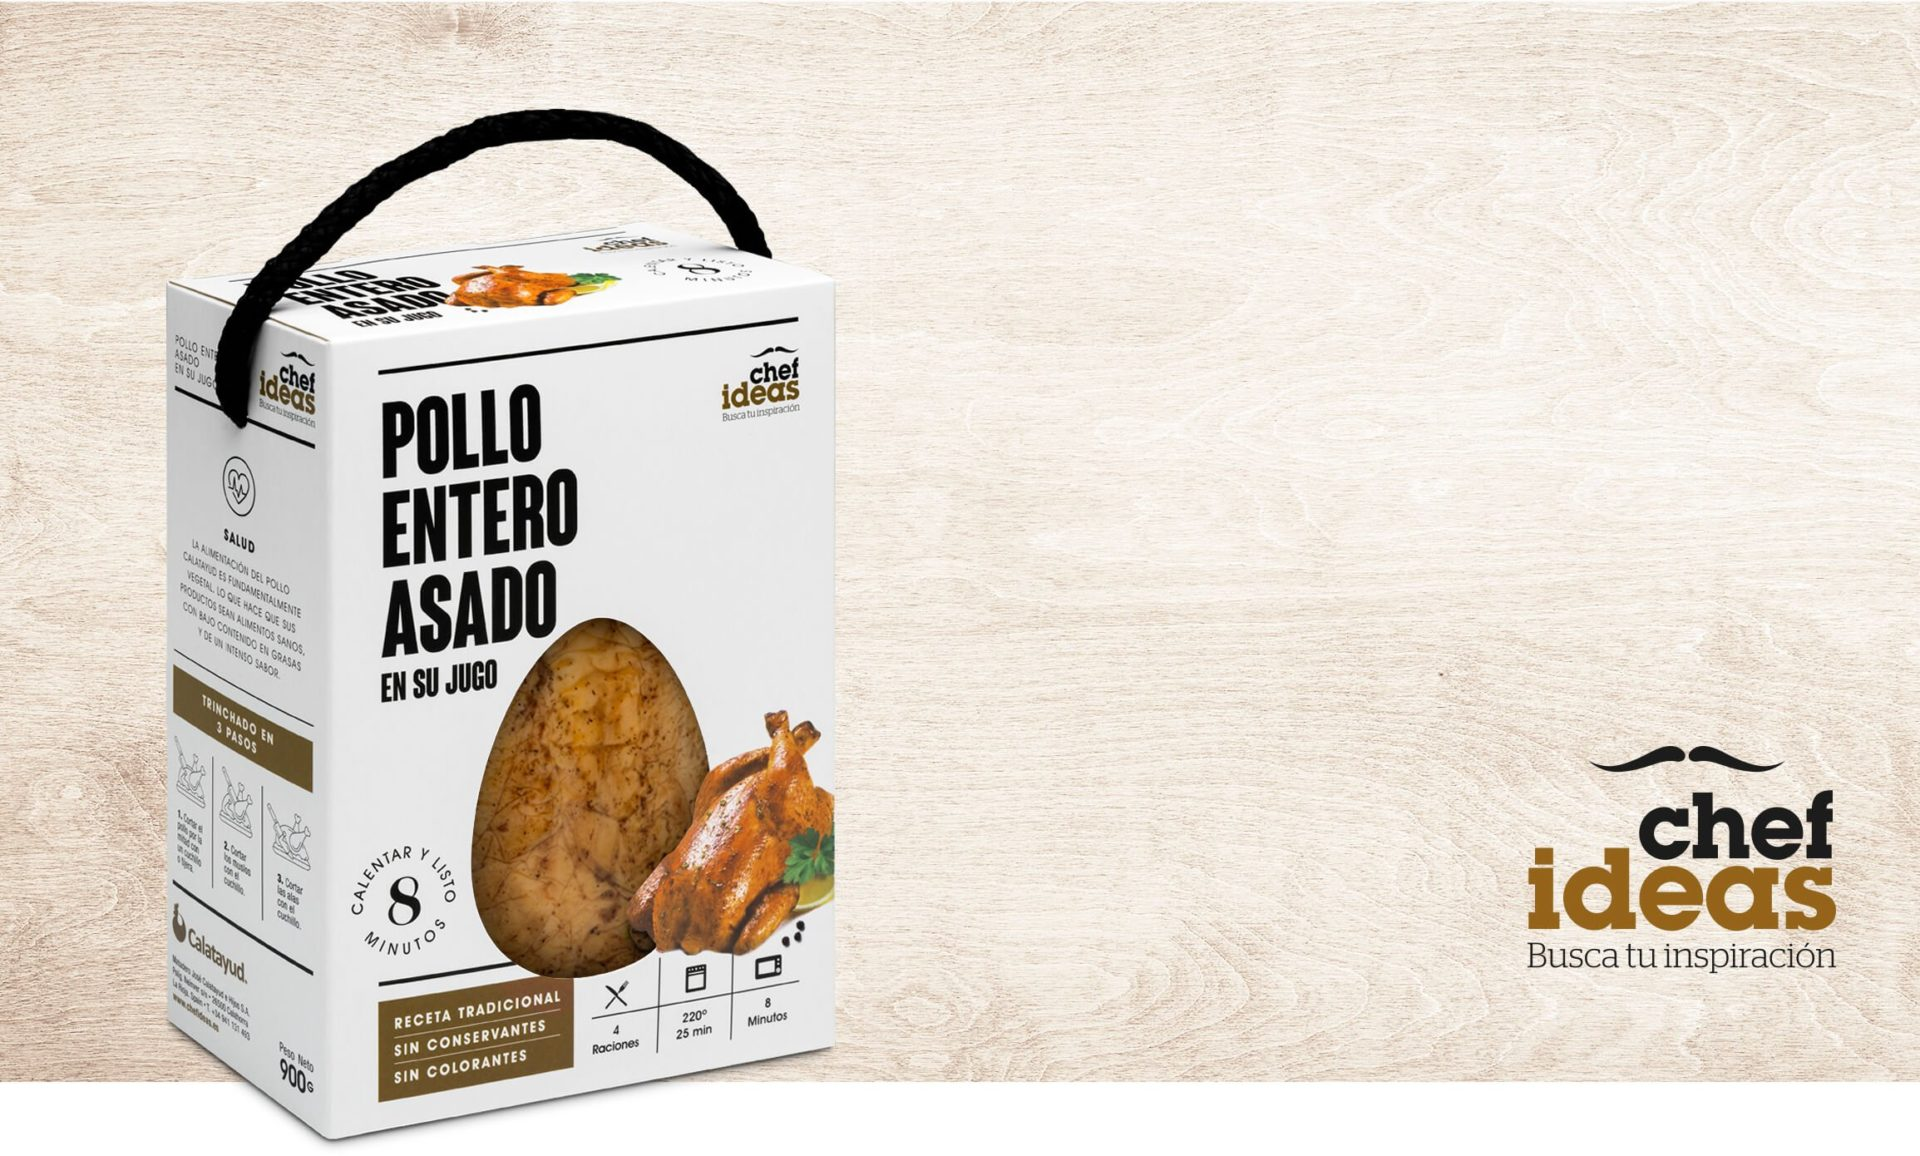 diseño-packaging-asados-chef-ideas-pollo-entero-calentar-y-listo